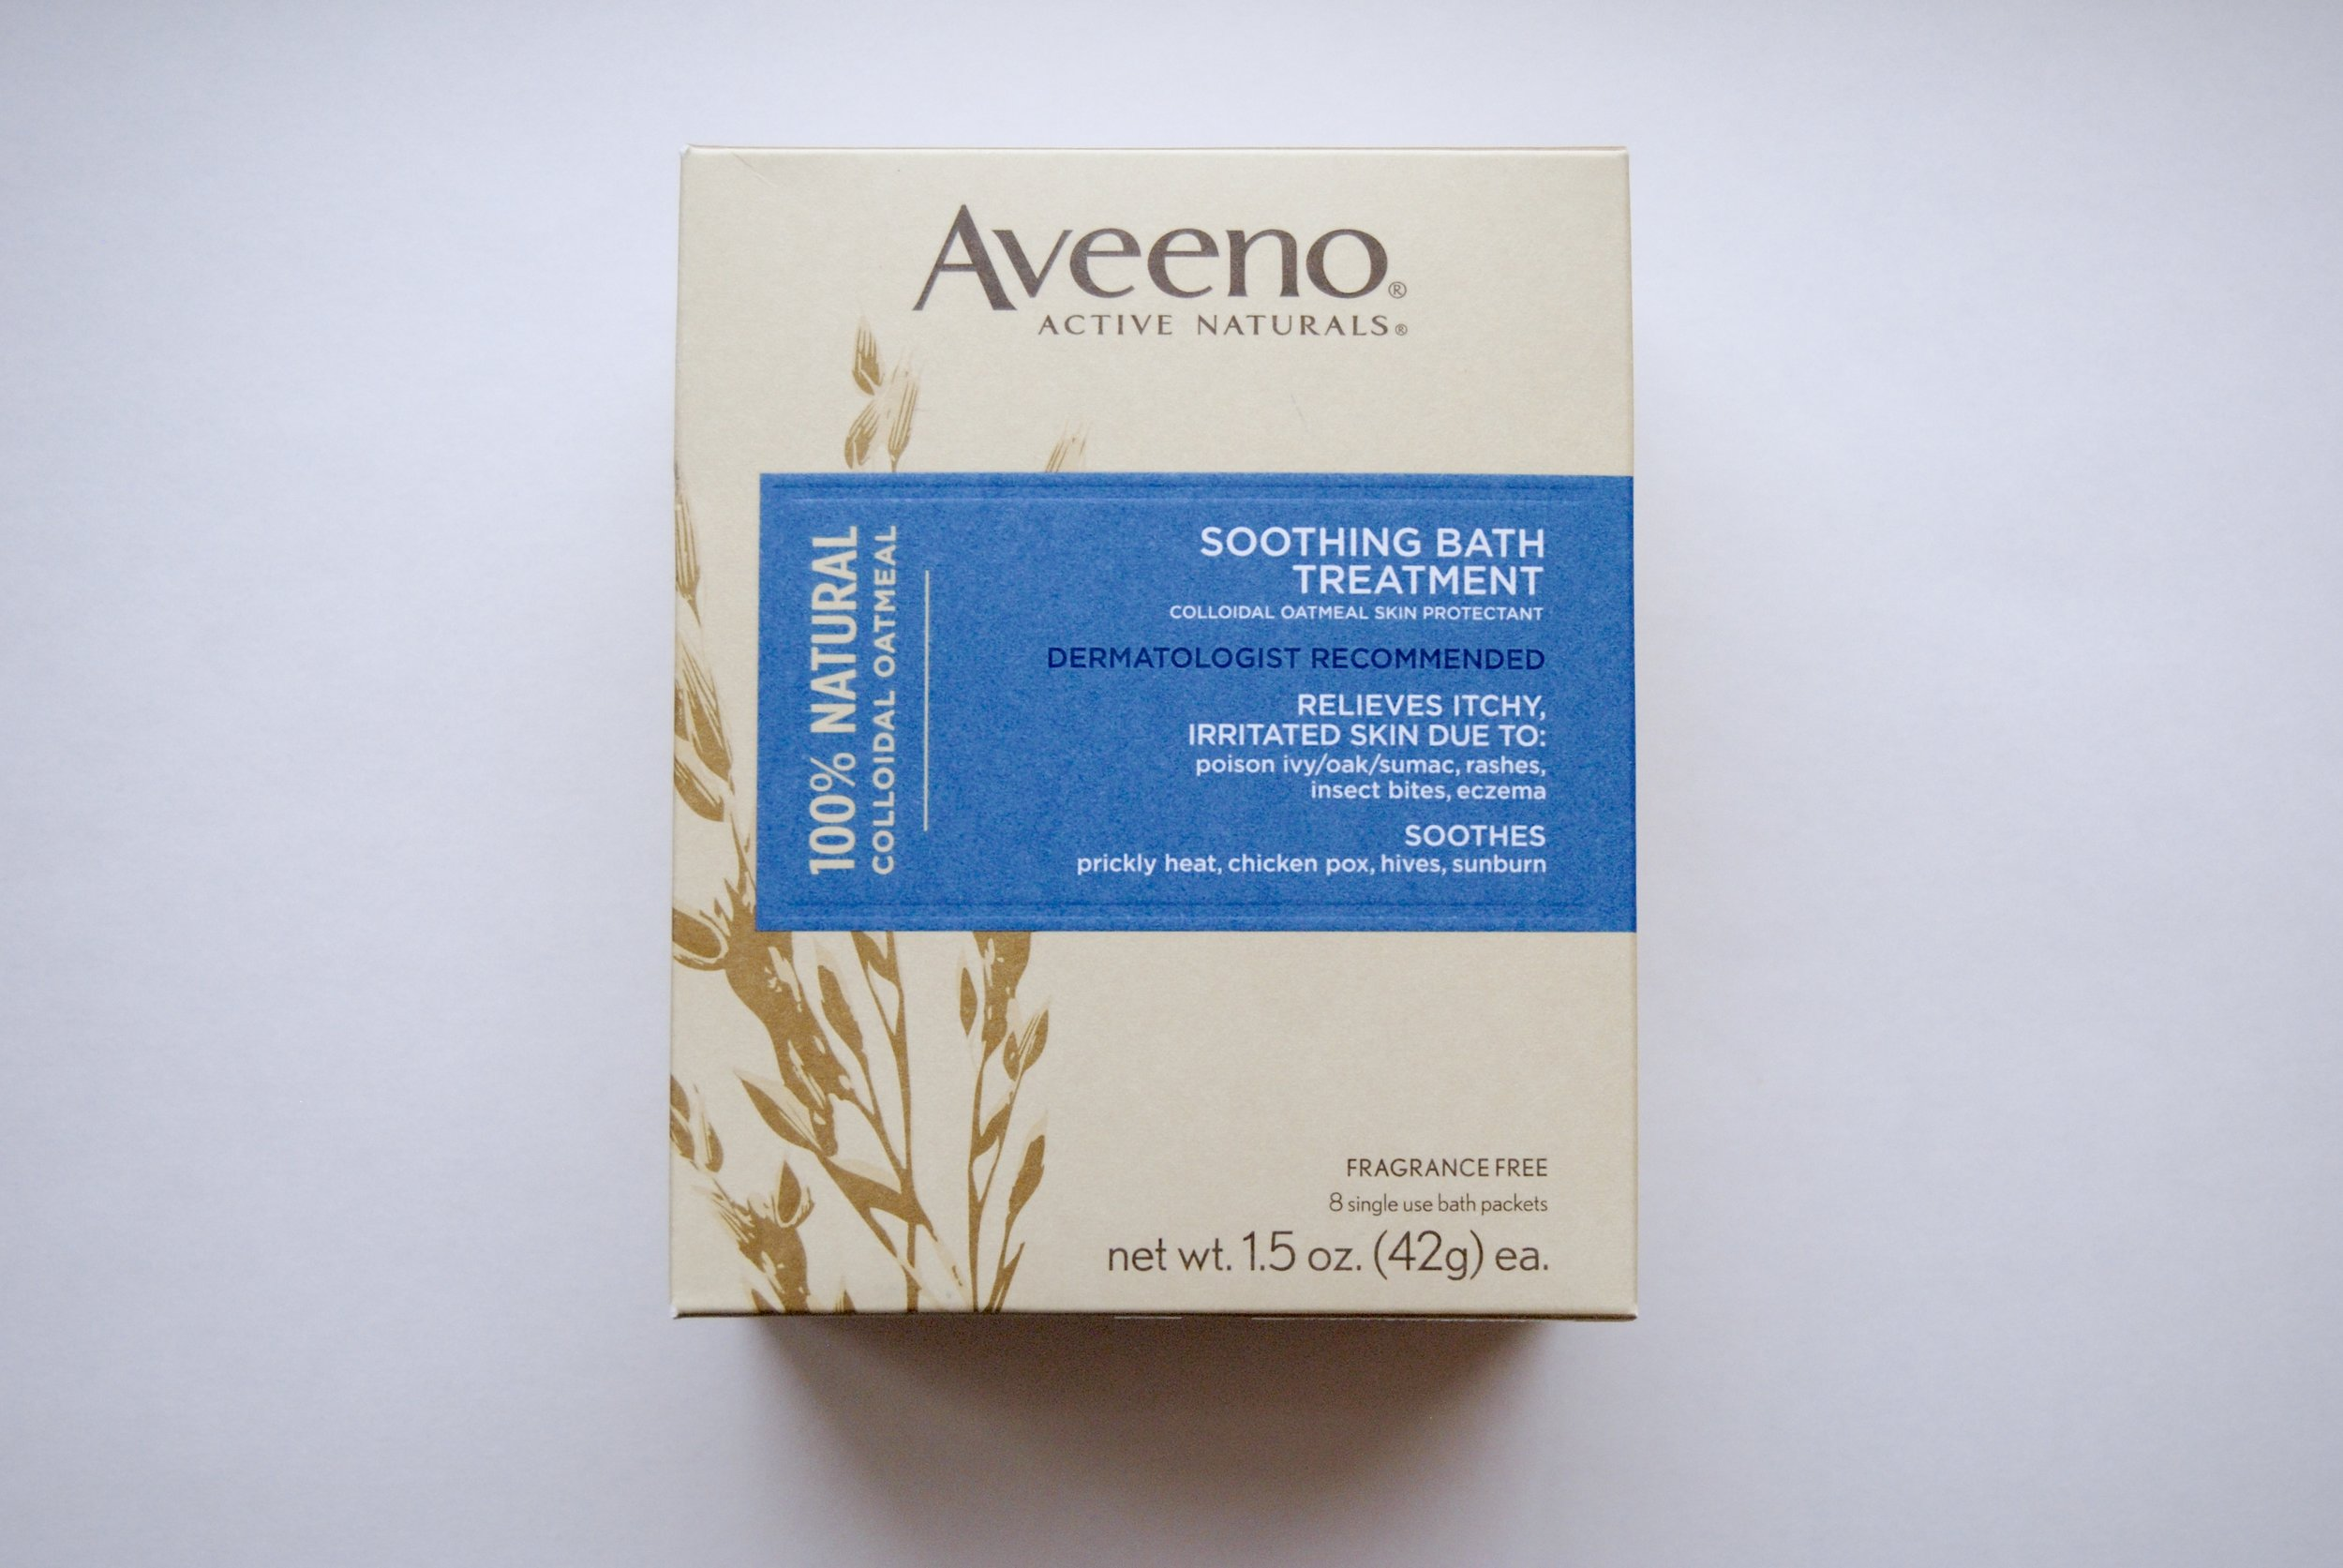 Anyone else remember their parents throwing you in the tub with this stuff?Chicken pox, eczema, sunburns - this was a staple.